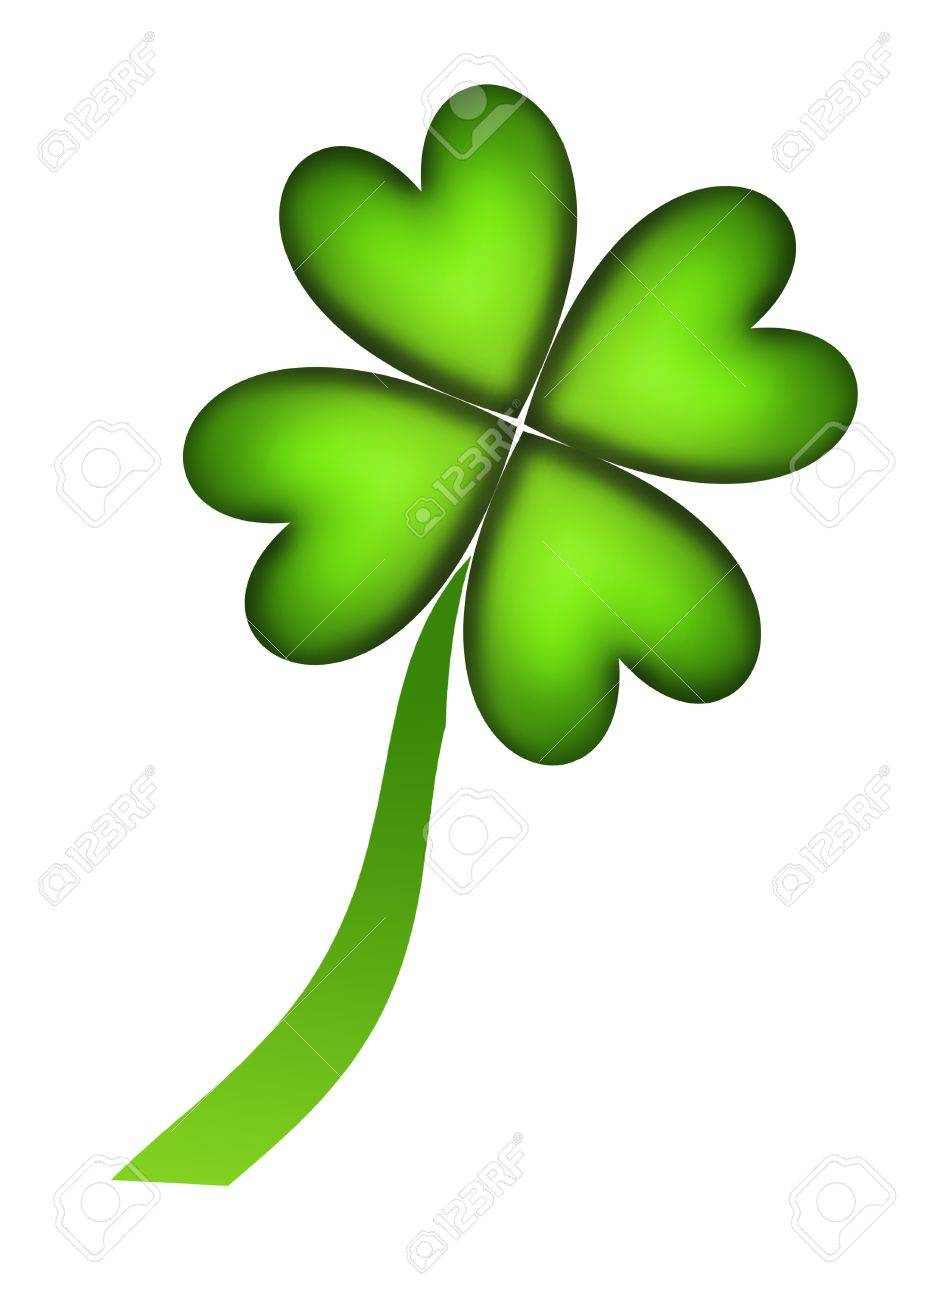 Four leaf clover representing good fortune over white background Stock Photo - 8912414